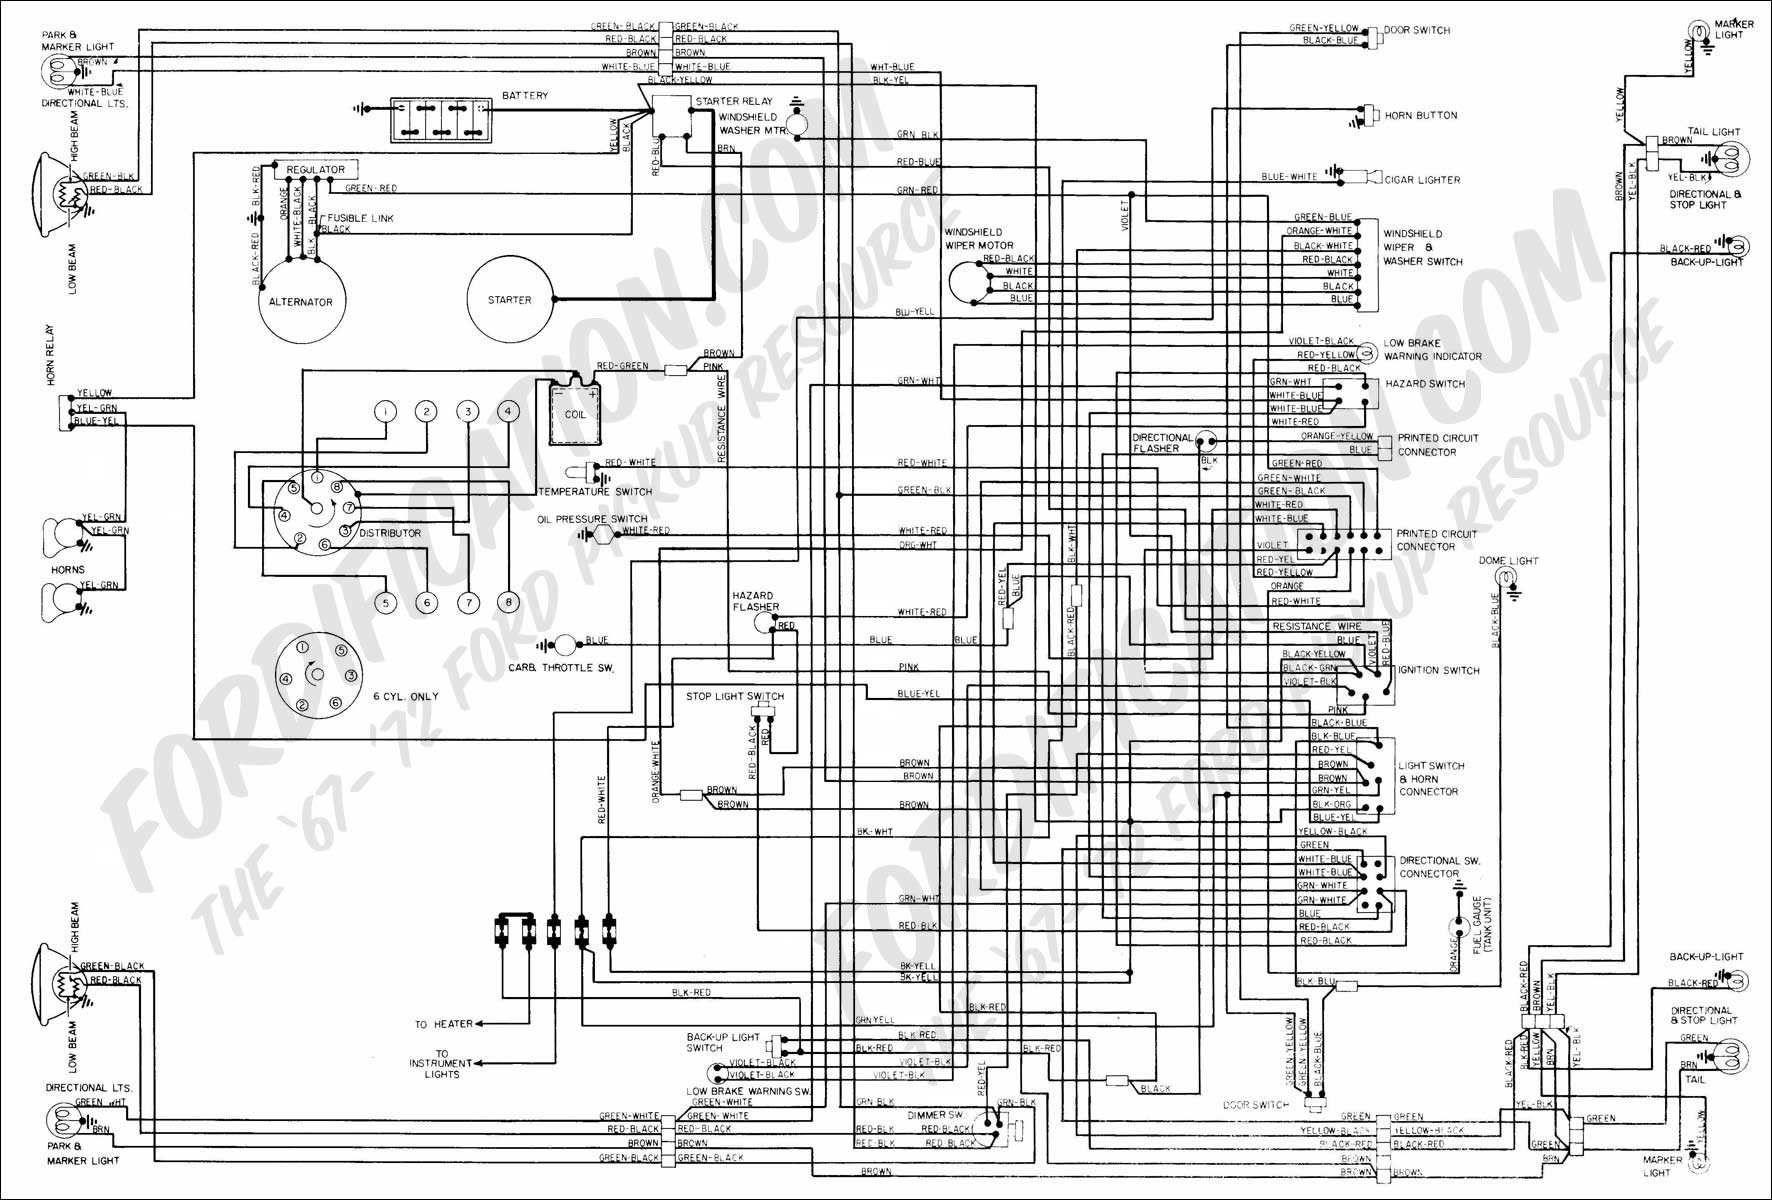 wiring diagram ford f150 1998 ford f150 4 2 v6 fuse box diagram ford wiring  diagrams